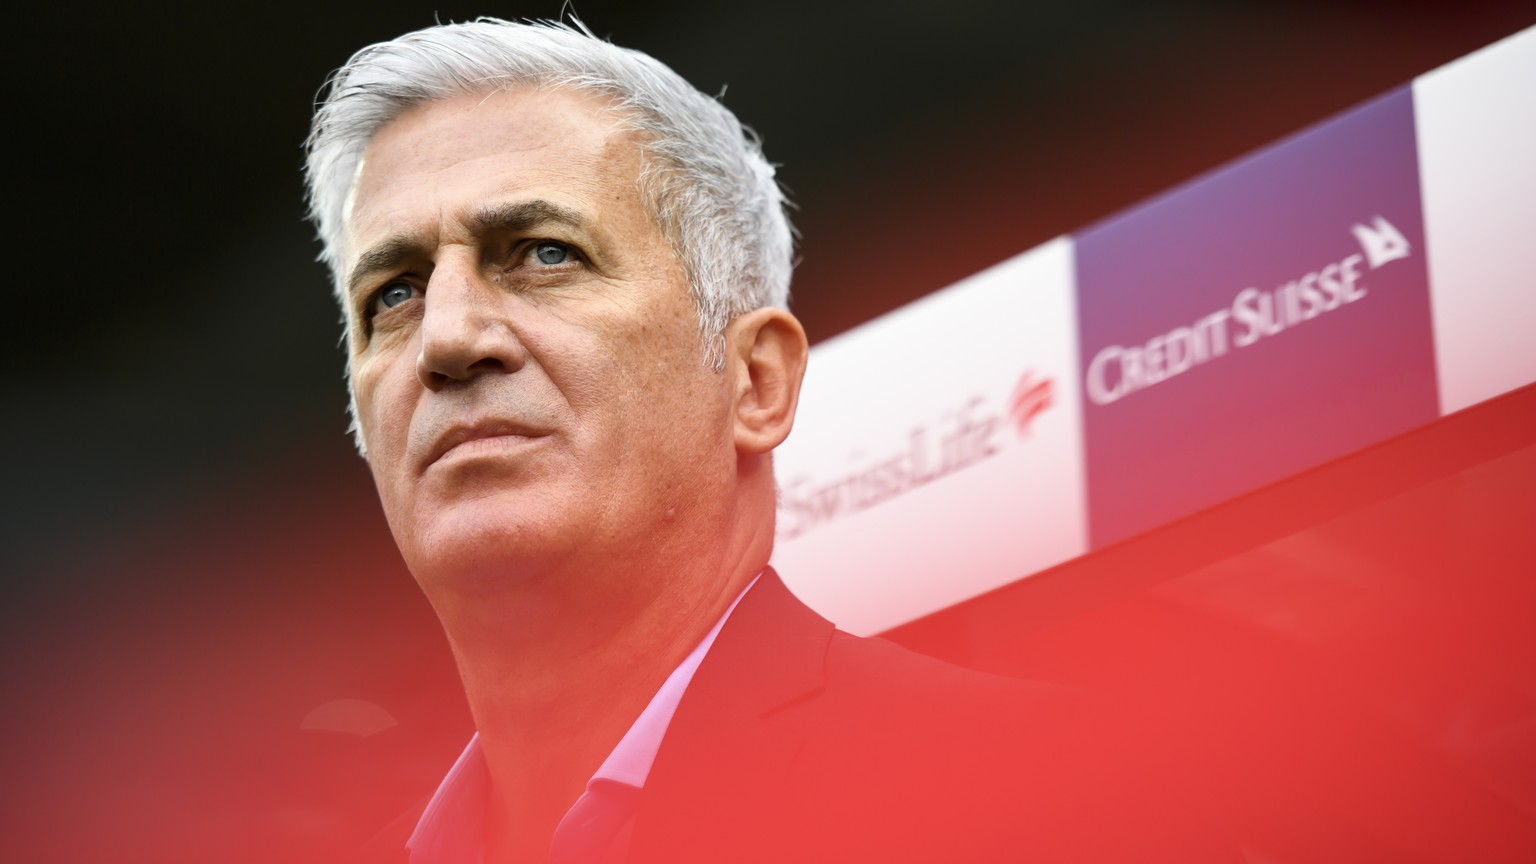 Switzerland's head coach Vladimir Petkovic, pictured during the UEFA Euro 2020 qualifying Group D soccer match between the Switzerland and Gibraltar, at the Tourbillon Stadium in Sion, Switzerland, Sunday, September 8, 2019. (KEYSTONE/Anthony Anex)